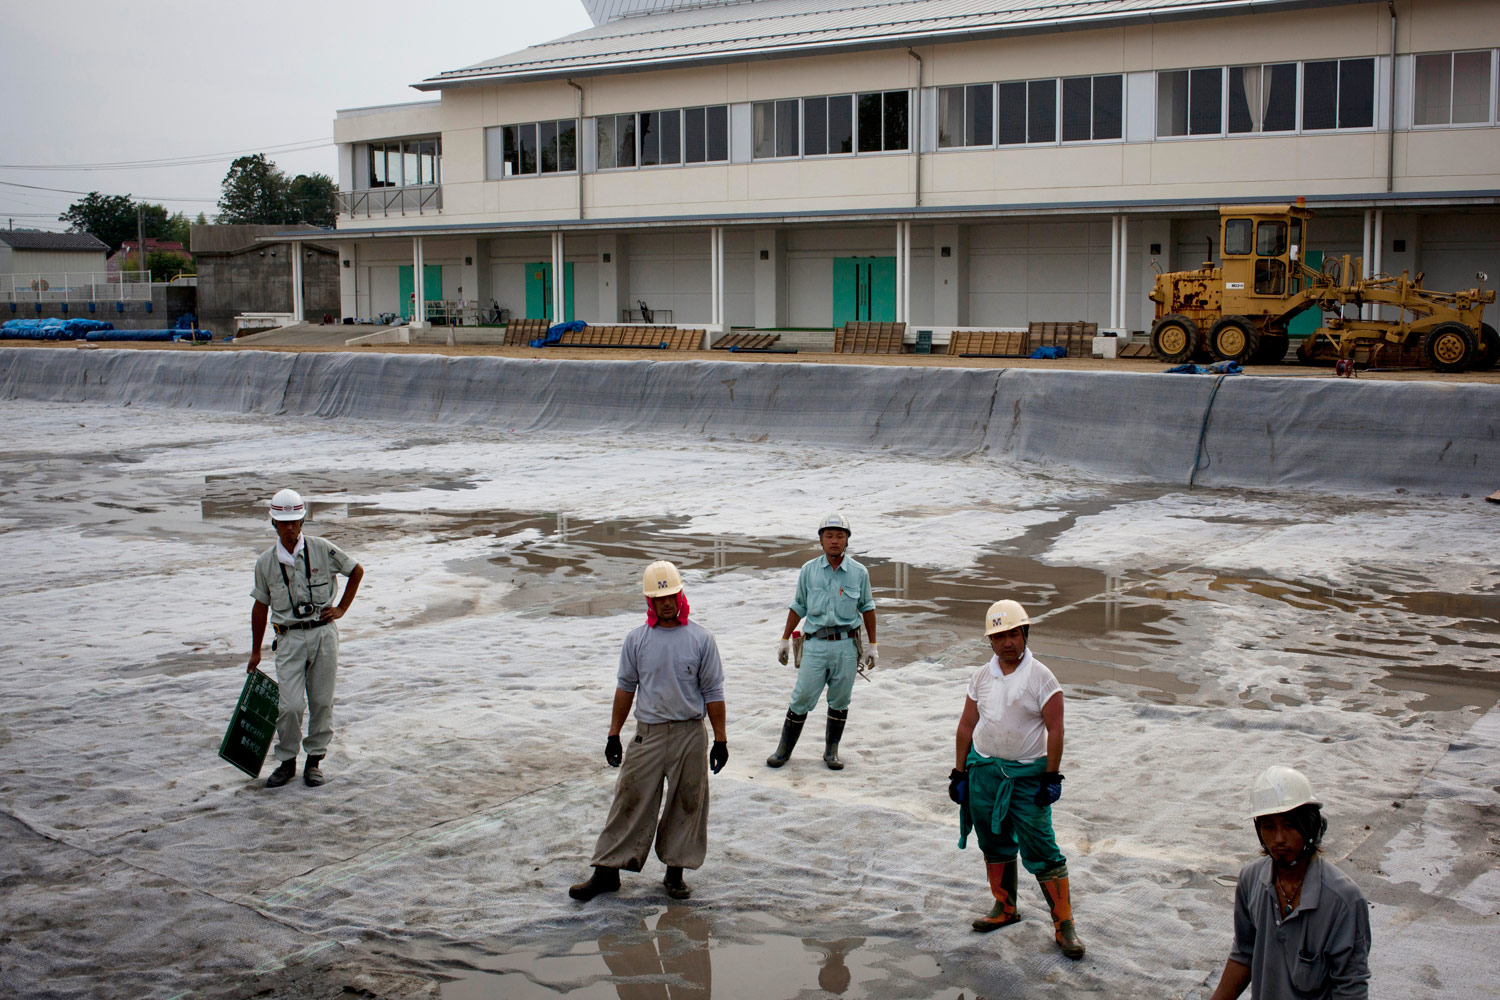 Workers prepare a huge hole near a public school in Minamisoma that will be used to bury contaminated soil August 12, 2011. The contaminated soil is covered with a minimum of 20 inches of clean topsoil, a process that officials say has lowered ground radiation levels by 80%.